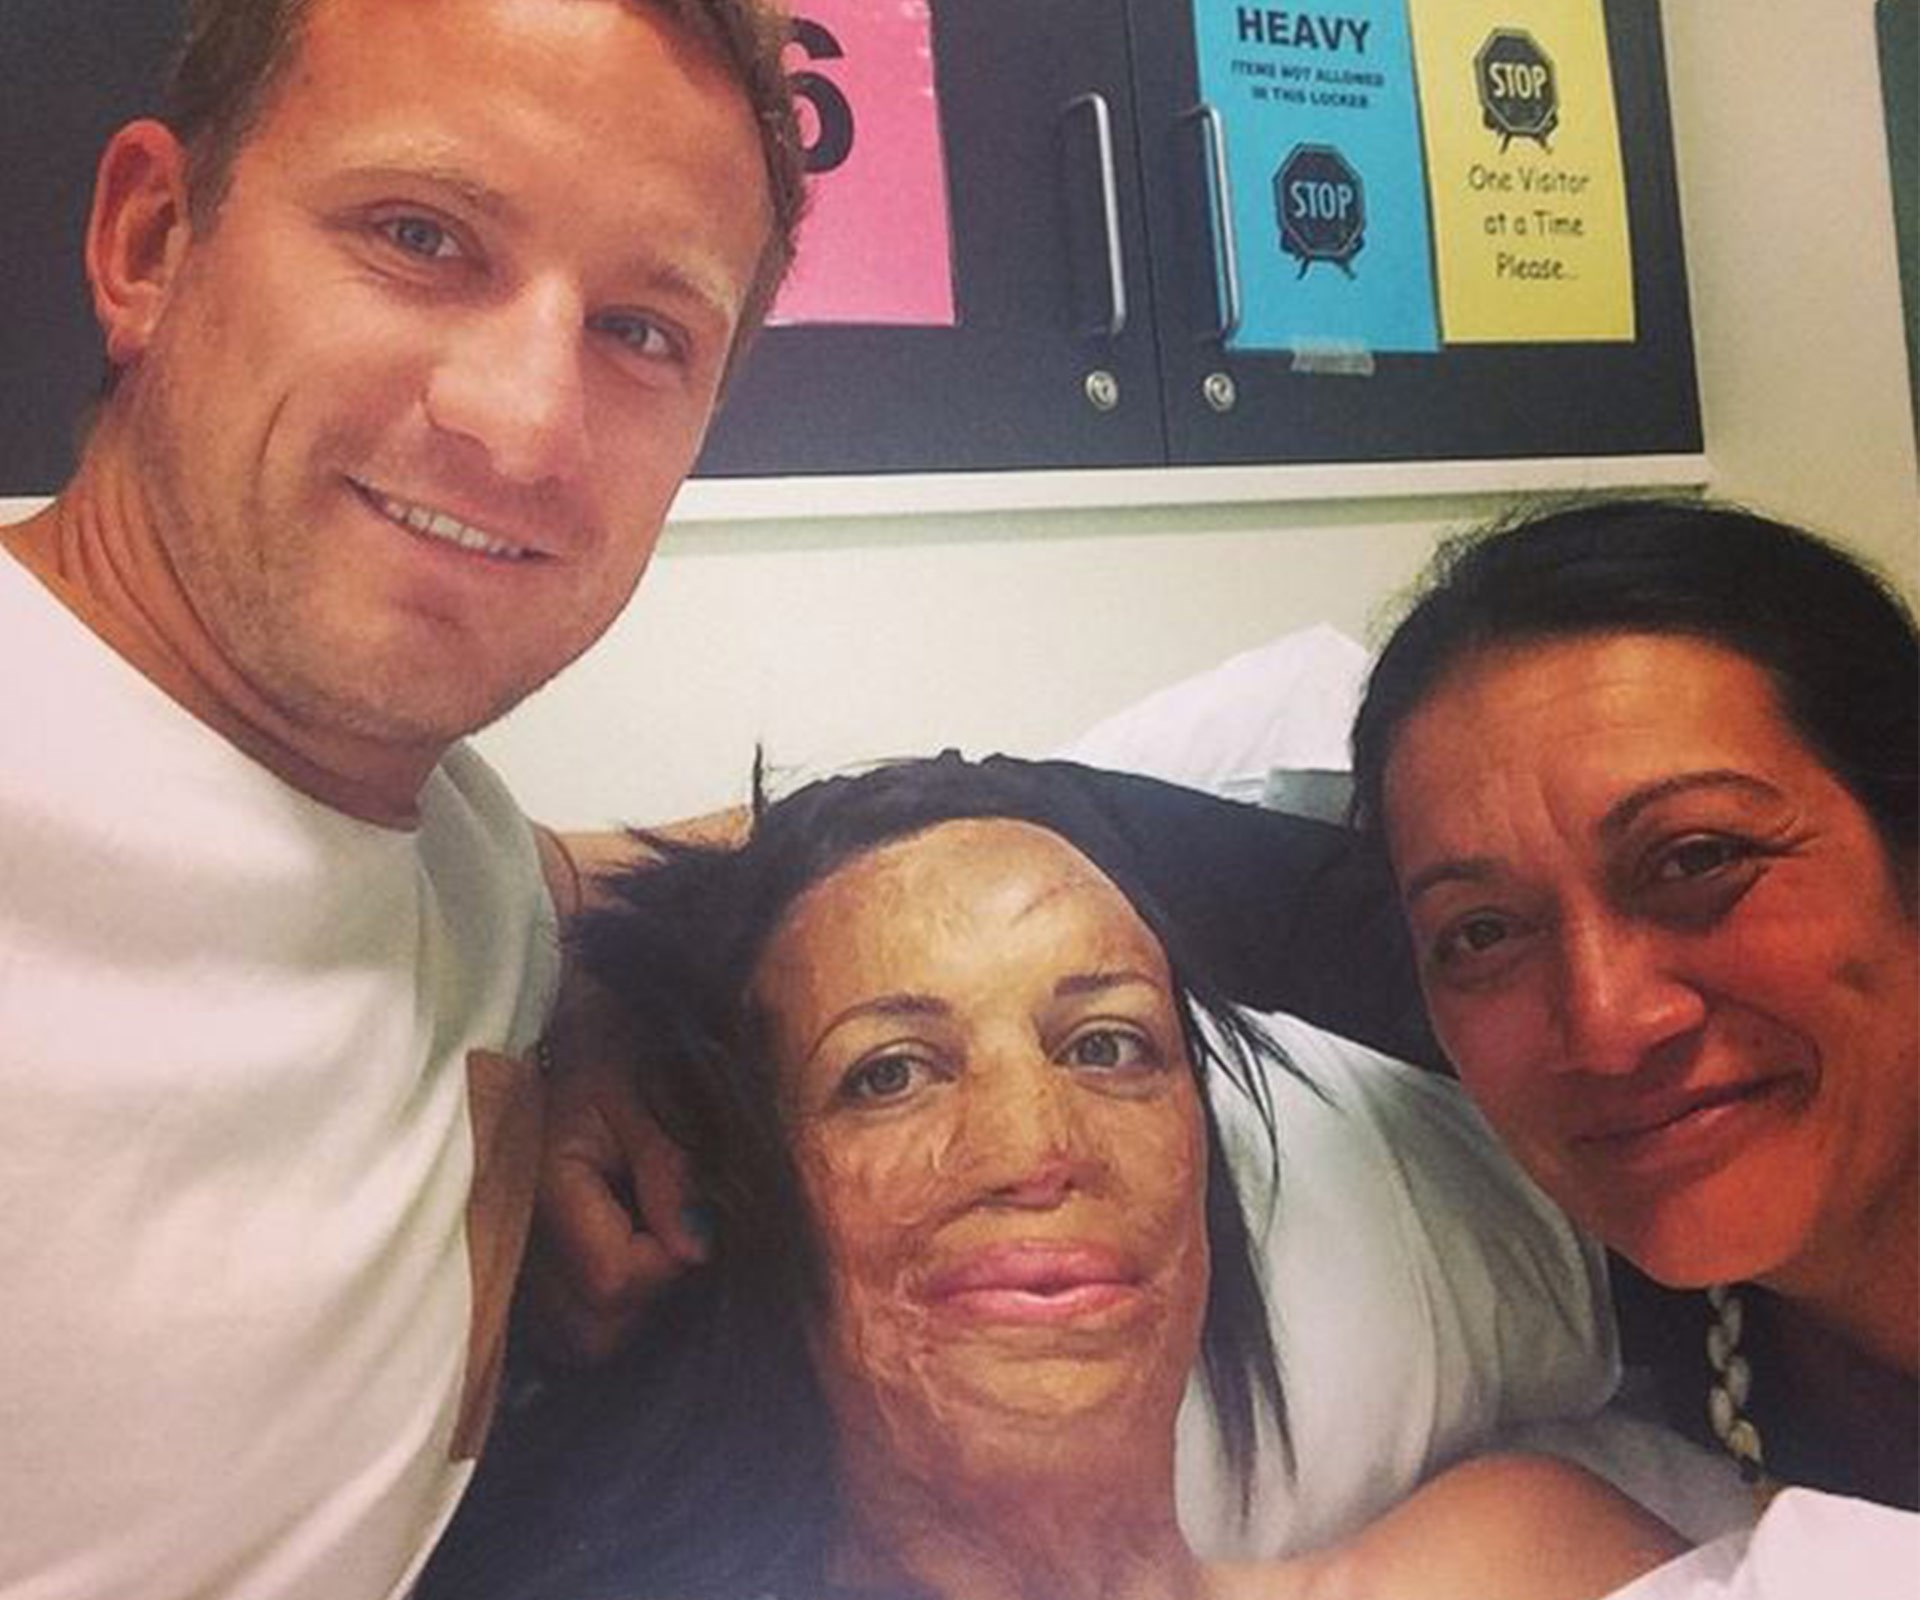 In pictures: Turia Pitt and Michael Hoskin's love story:But in 2011 Turia suffered burns to 65 per cent of her body, lost her fingers and thumb on her right hand and spent five months in hospital after she was trapped by a grassfire in a 100 kilometre ultra-marathon in the Kimberley.